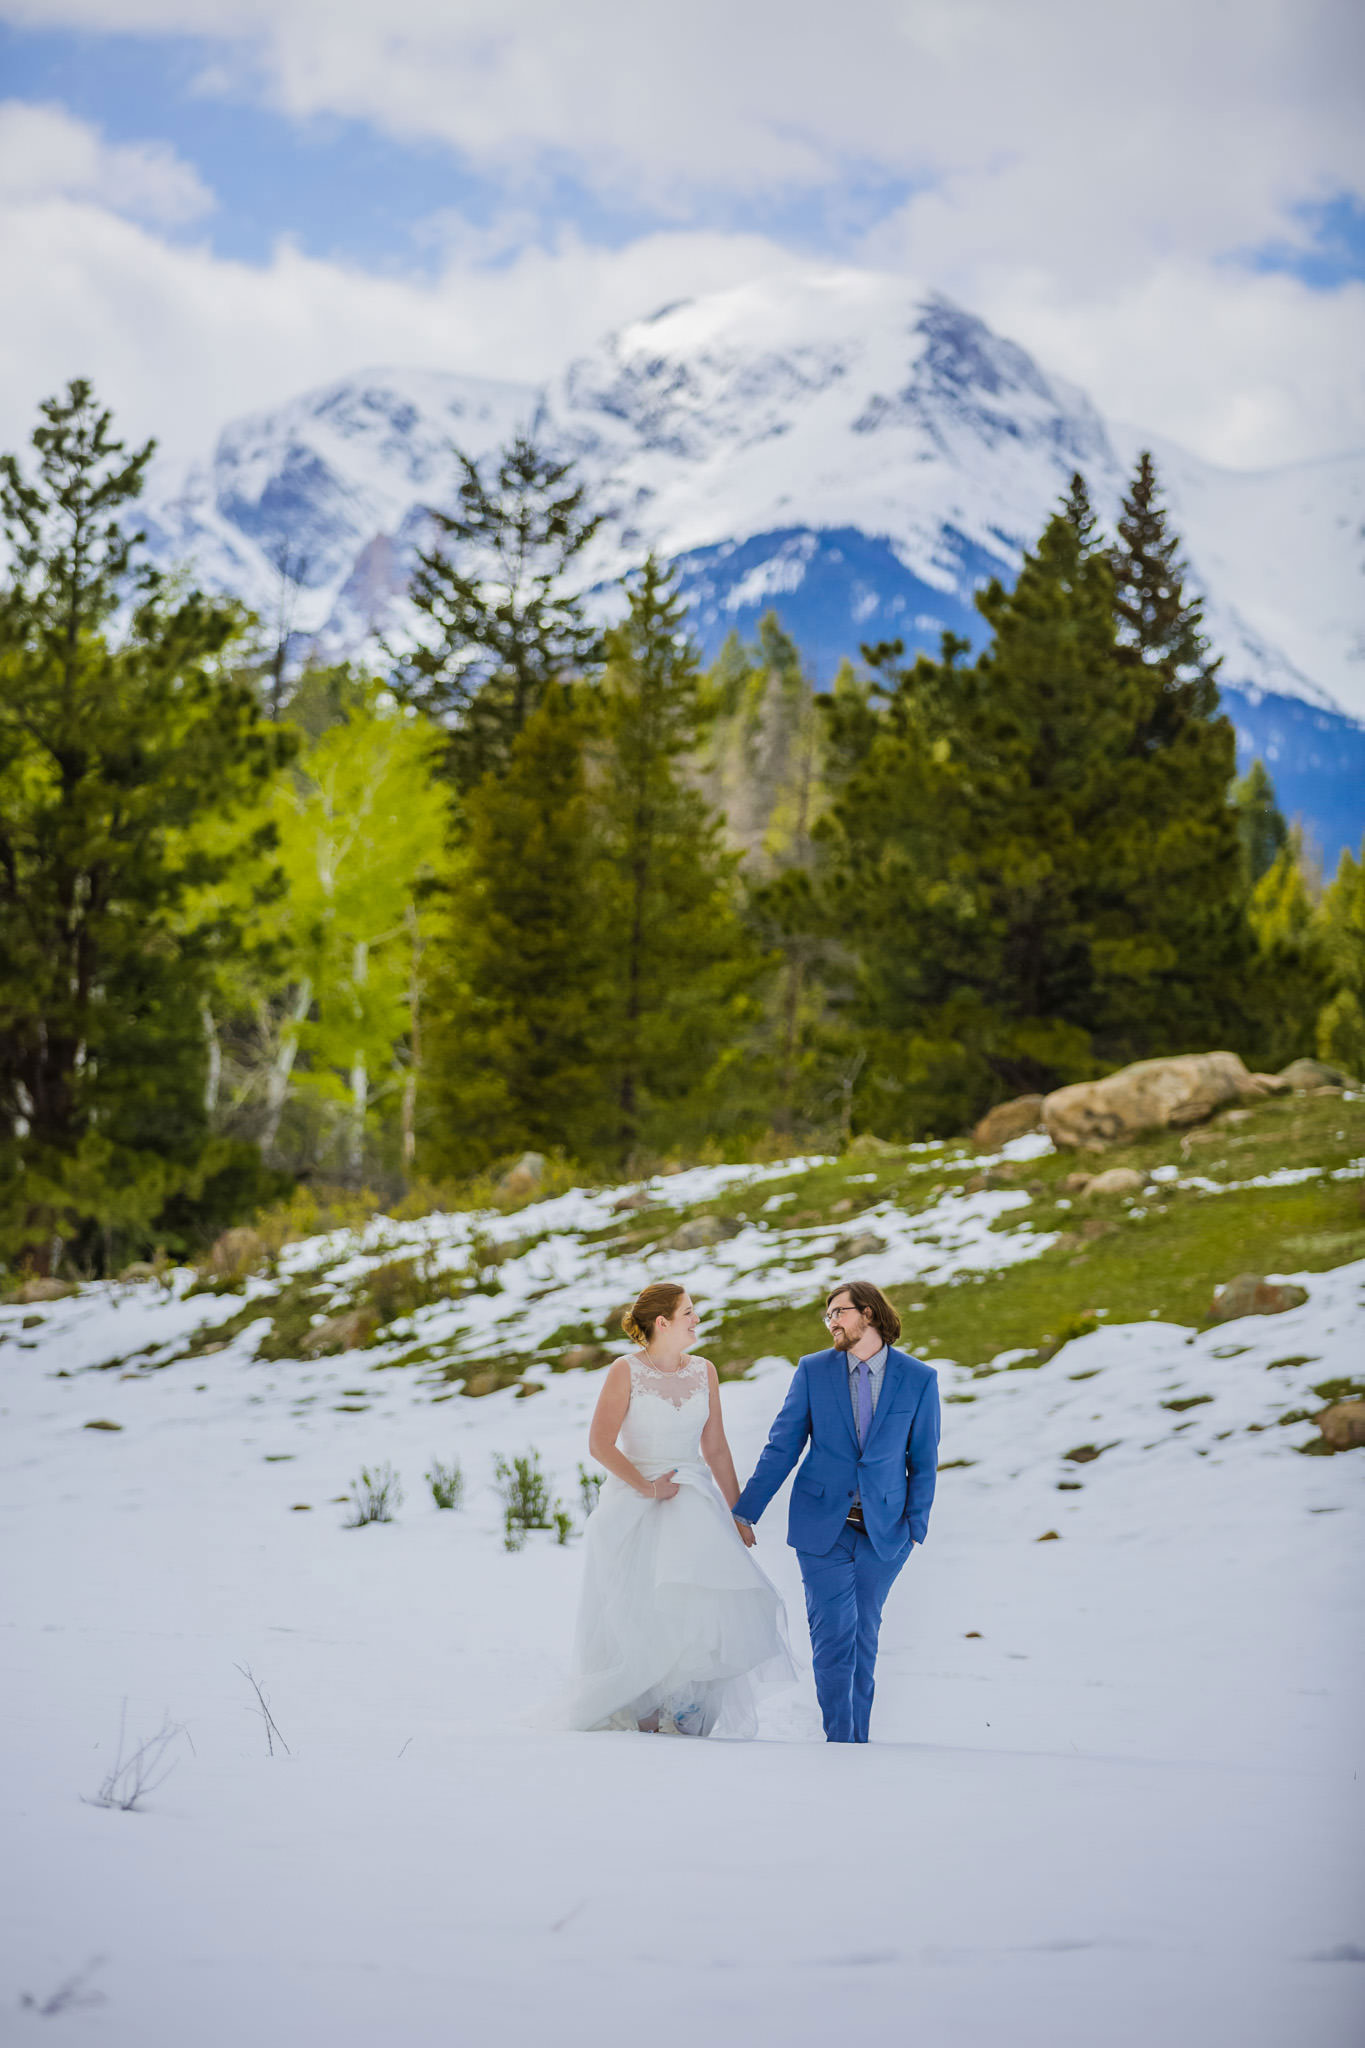 A Snowy Winter Elopement In Rocky Mountain National Park Luxe Mountain Weddings Mountain